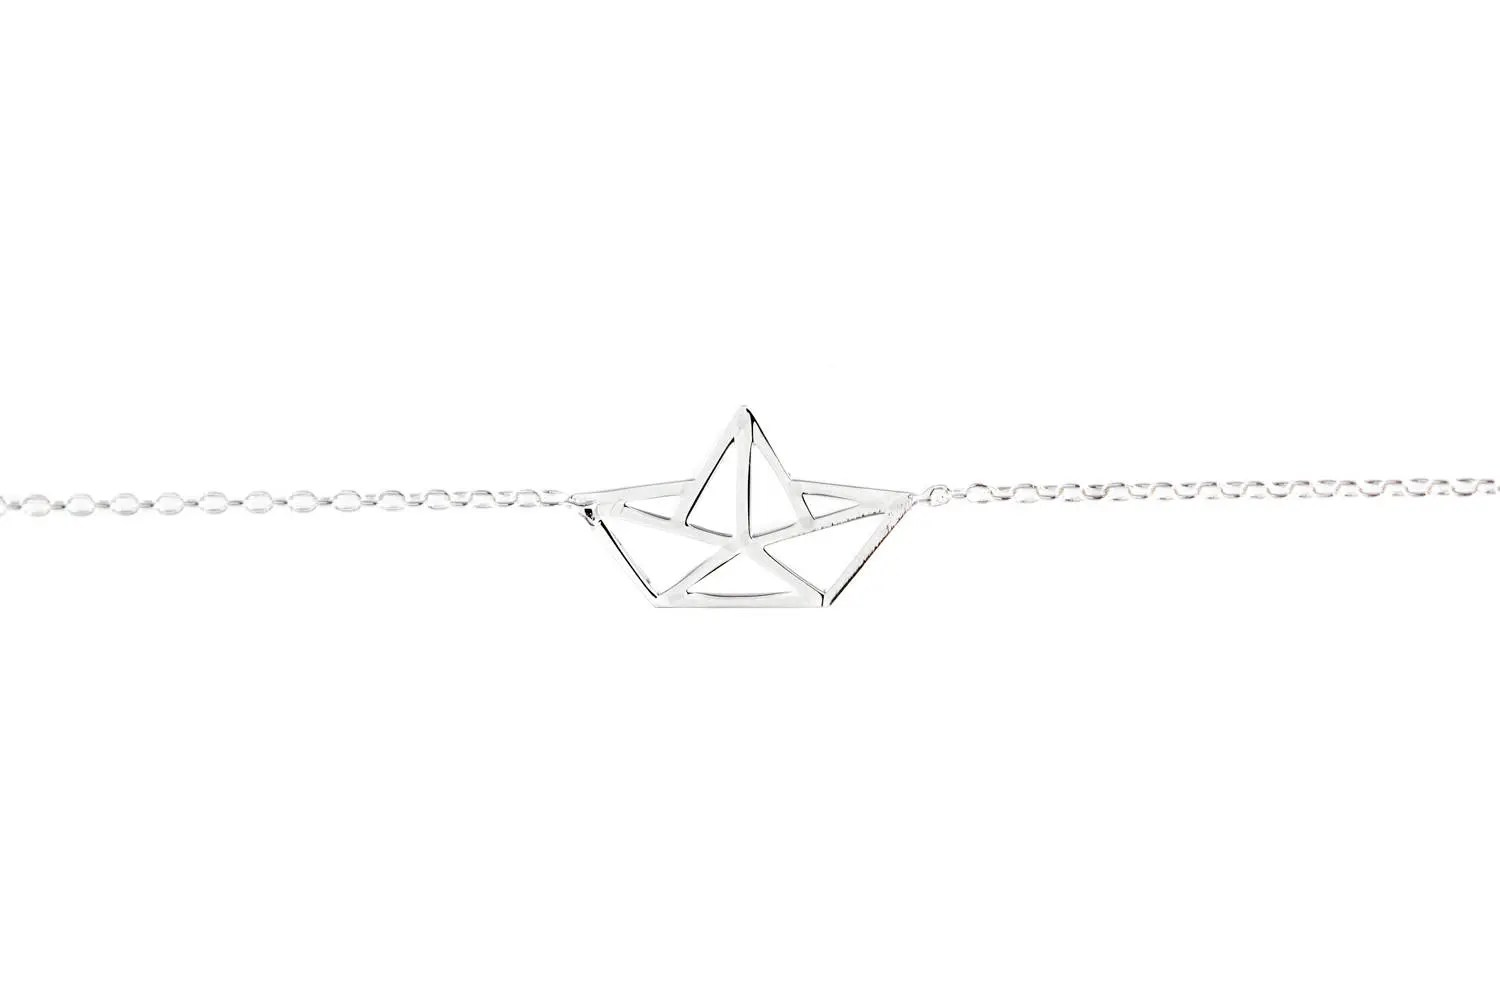 diagram origami bracelet boat trailer wiring 5 way paper gold fill or silver etsy